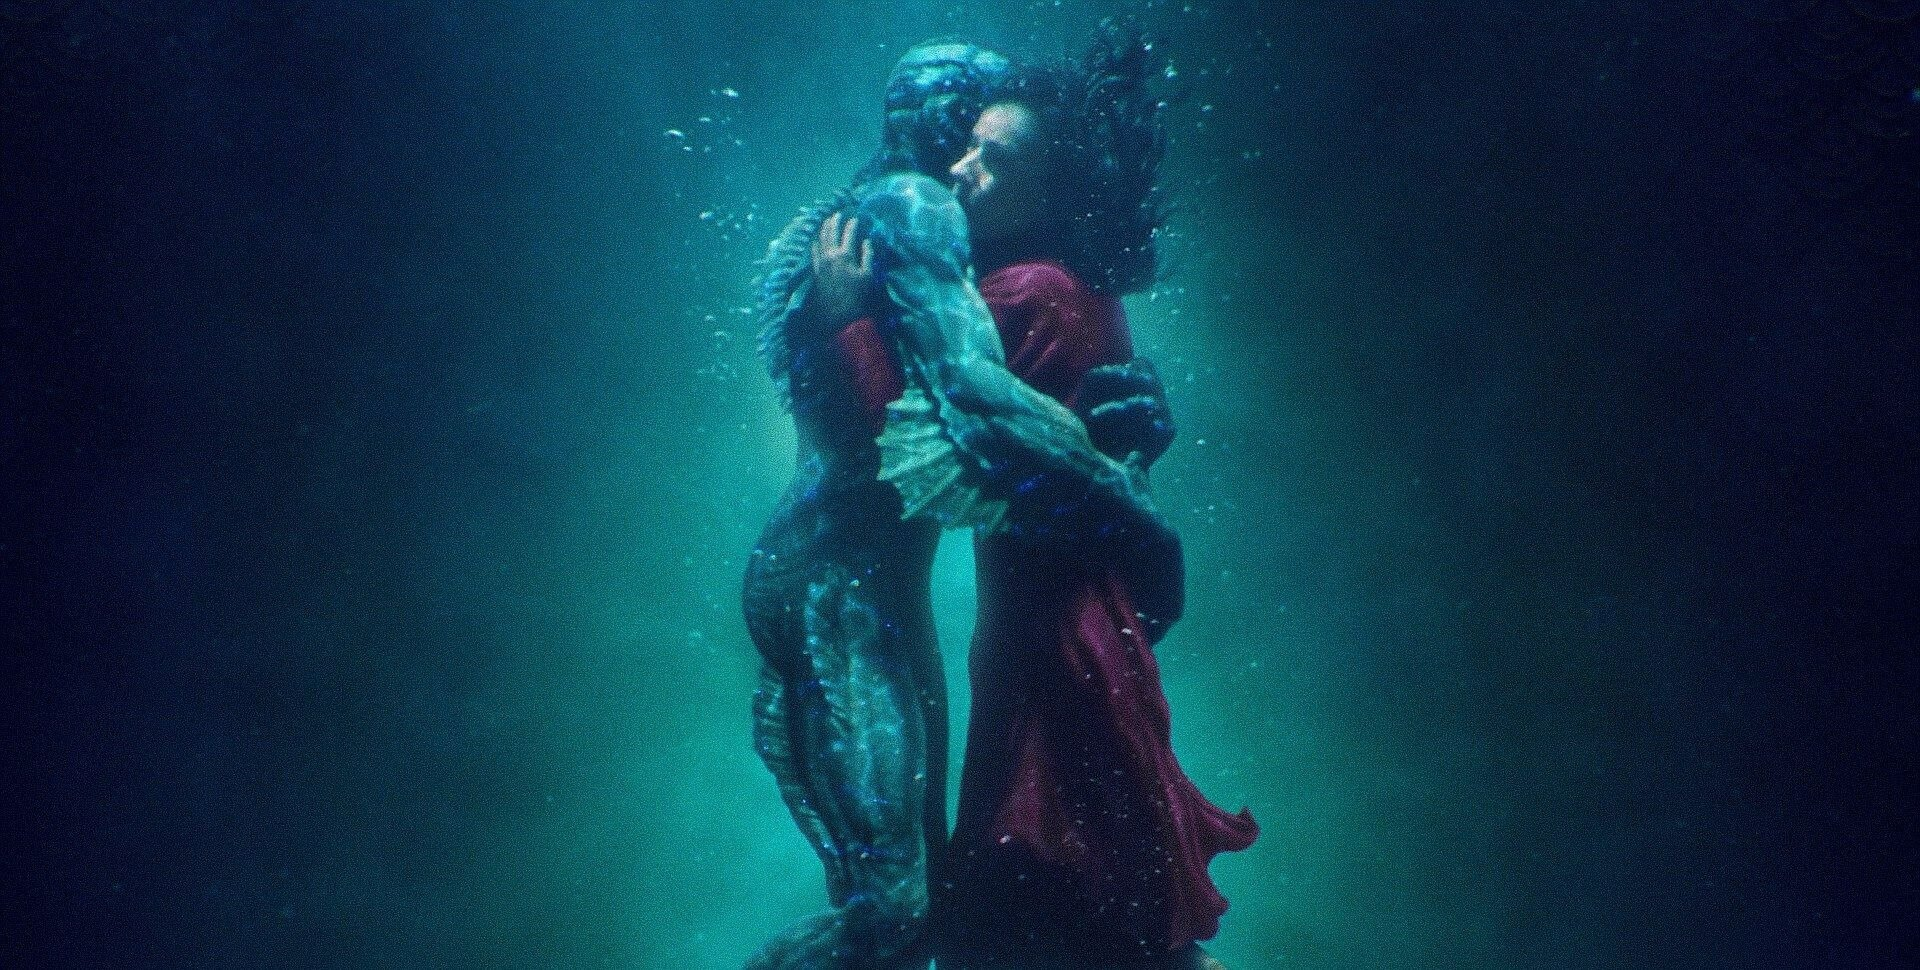 The Shape of Water 2017 Spoiler Free Movie Review